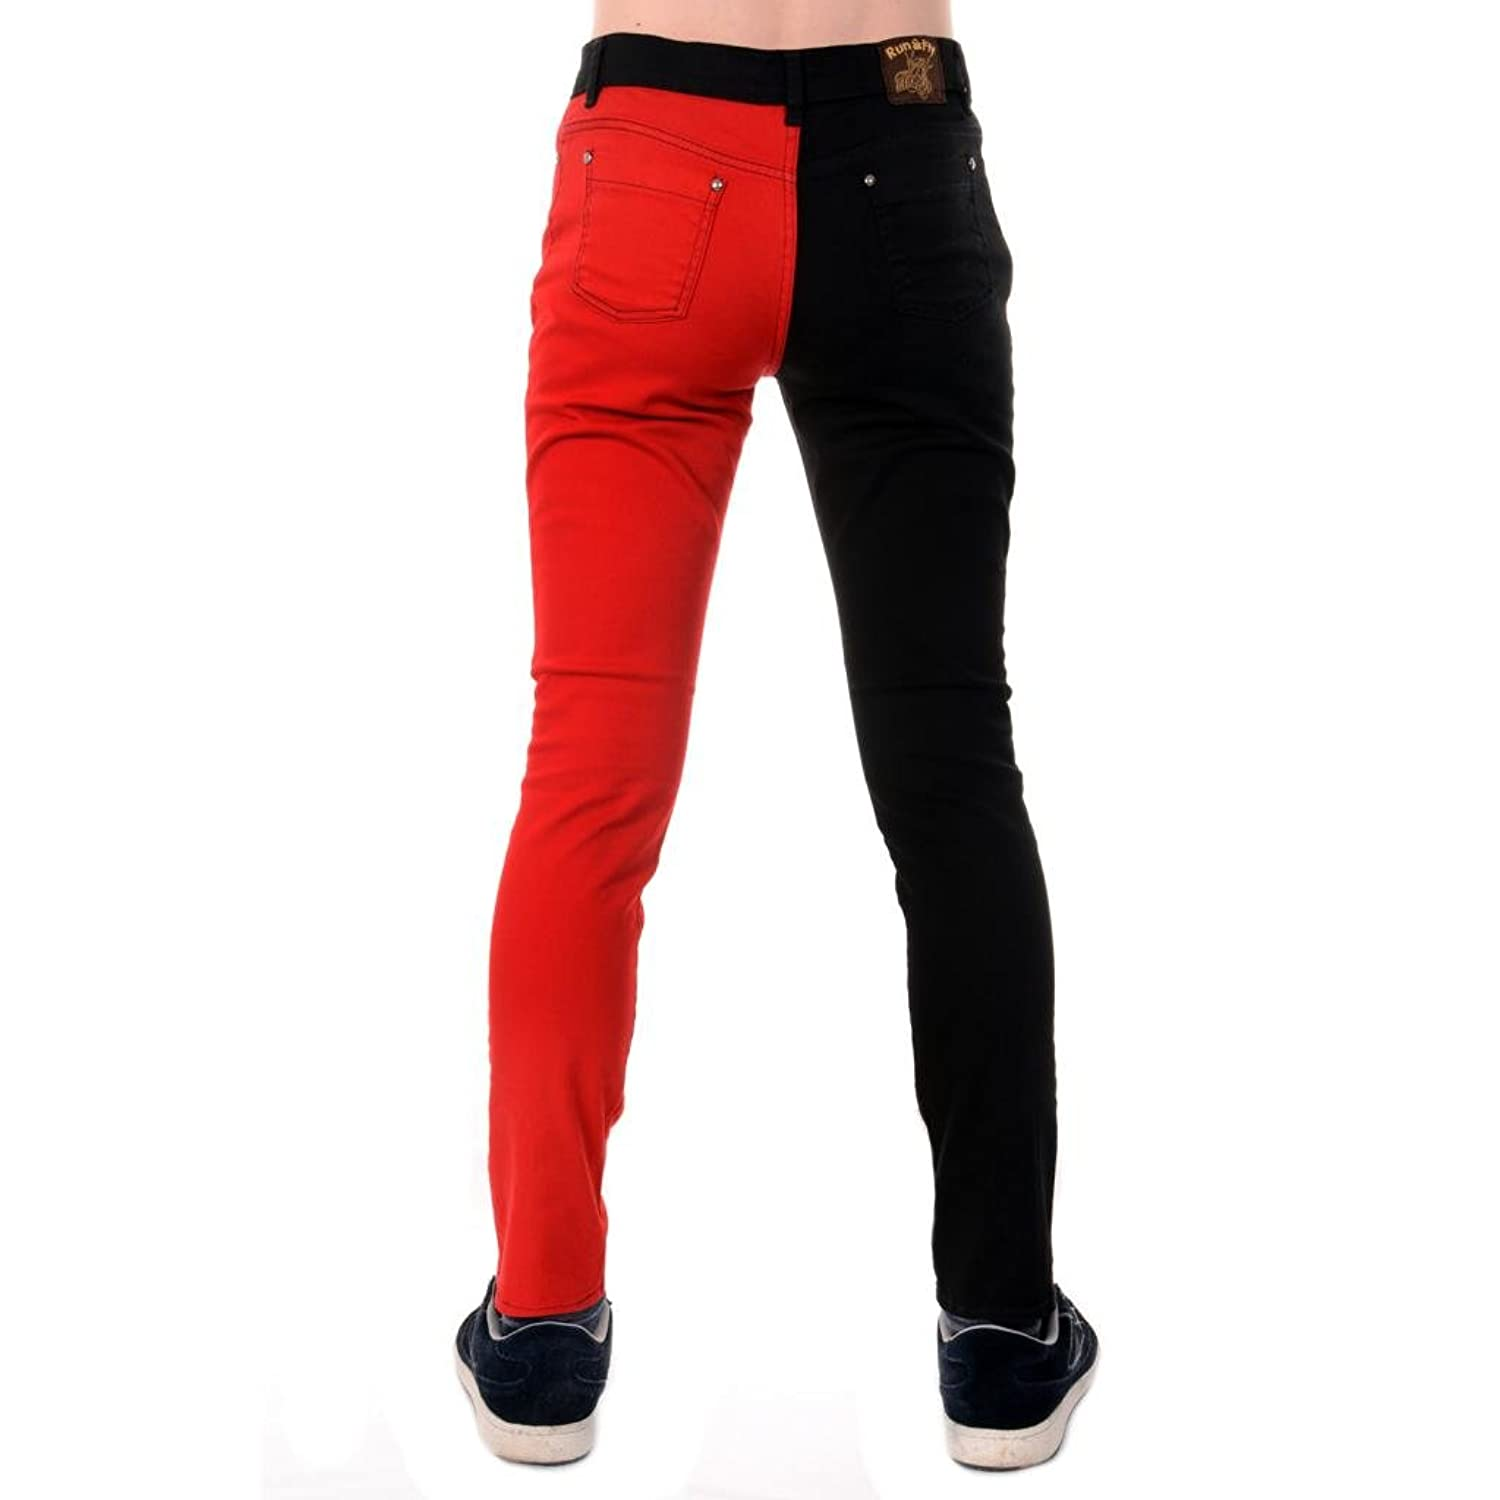 Shop for men's skinny jeans at ASOS. Our skinny jeans for men are perfect for the fashion forward denim enthusiast. Add some cool to your wardrobe. New Look skinny jeans with red side stripe in blue wash. $ boohooMAN super skinny ripped jeans with stud detail in black wash. $